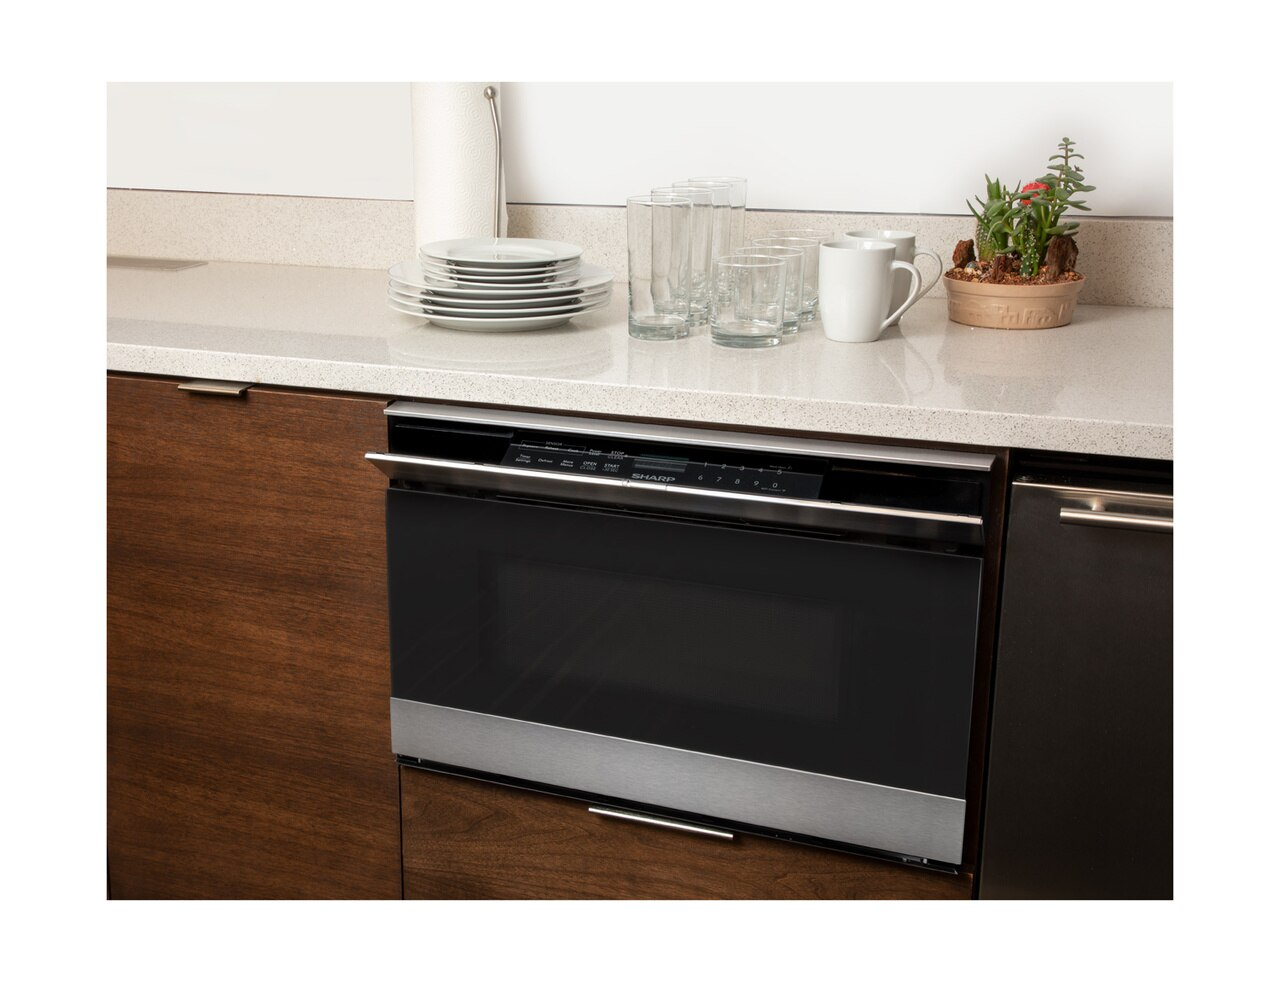 Pull-out Microwave: 24 in. Sharp Stainless Steel Smart Microwave Drawer Oven (SMD2489ES) Works with Alexa, and the Sharp Kitchen App on the App Store and Google Play:  – Microwave drawer installed under counter